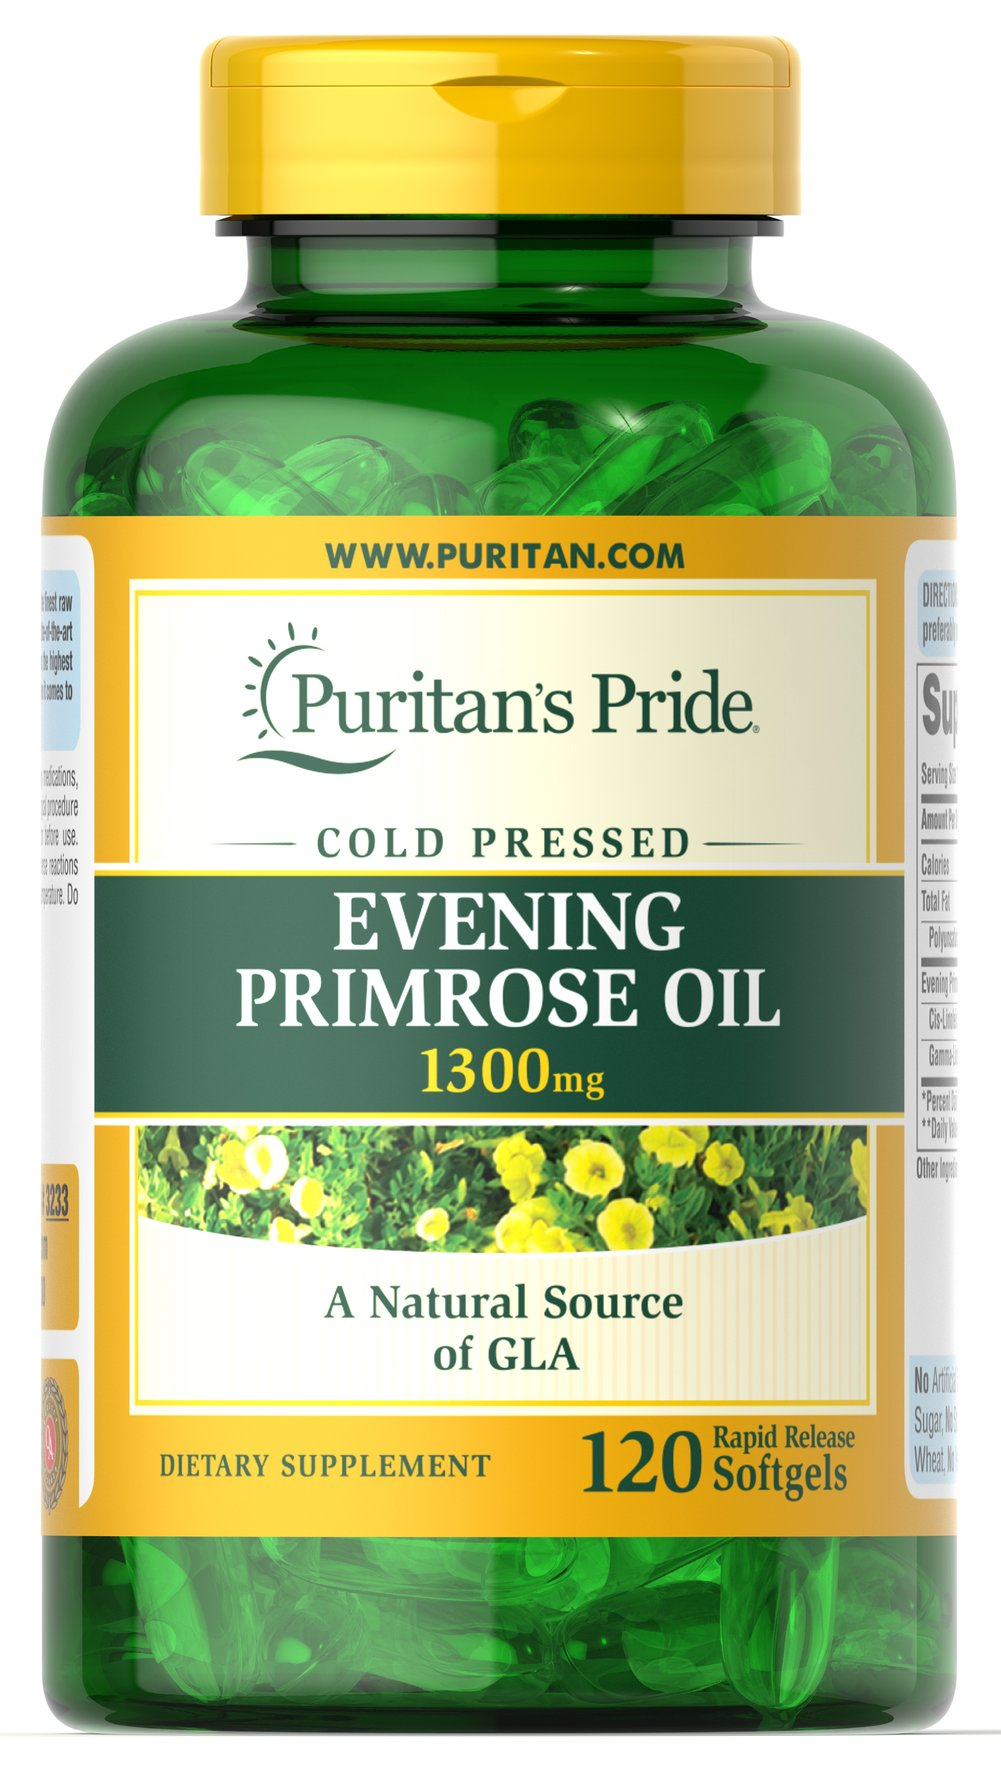 Evening Primrose Oil 1300 mg with GLA  120 Softgels 1300 mg $22.39